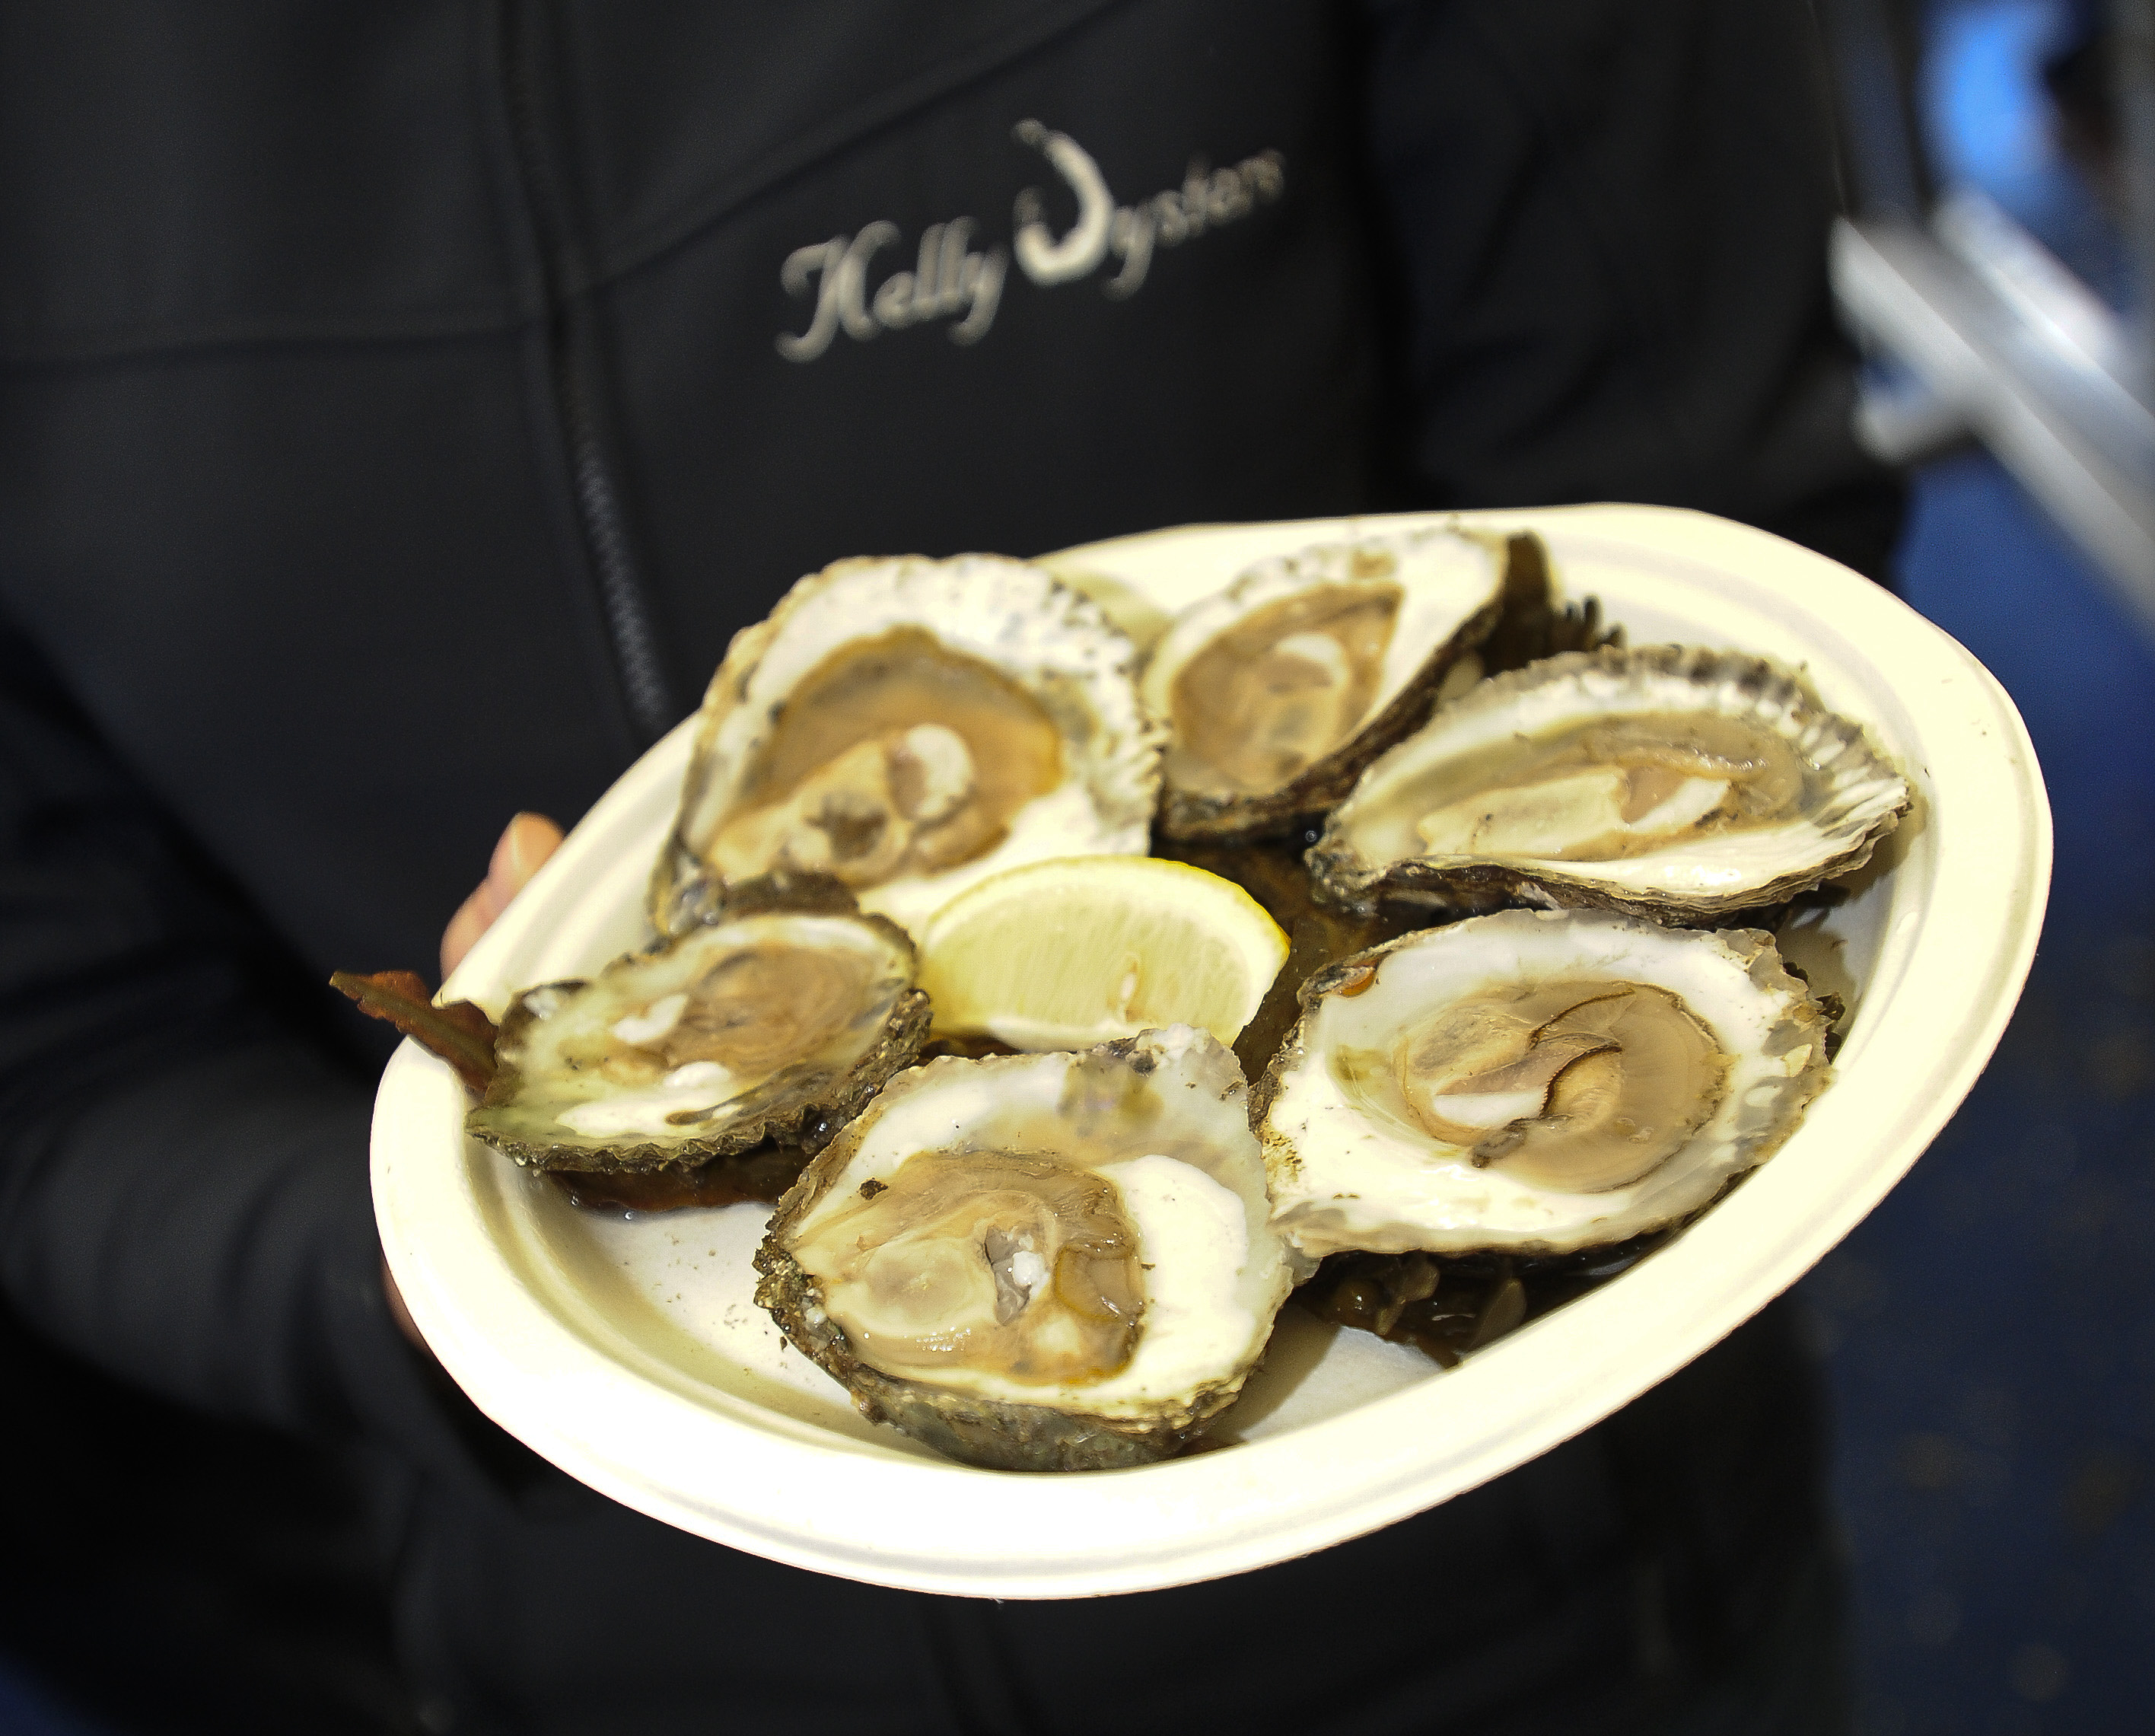 Oysters - ready to eat!